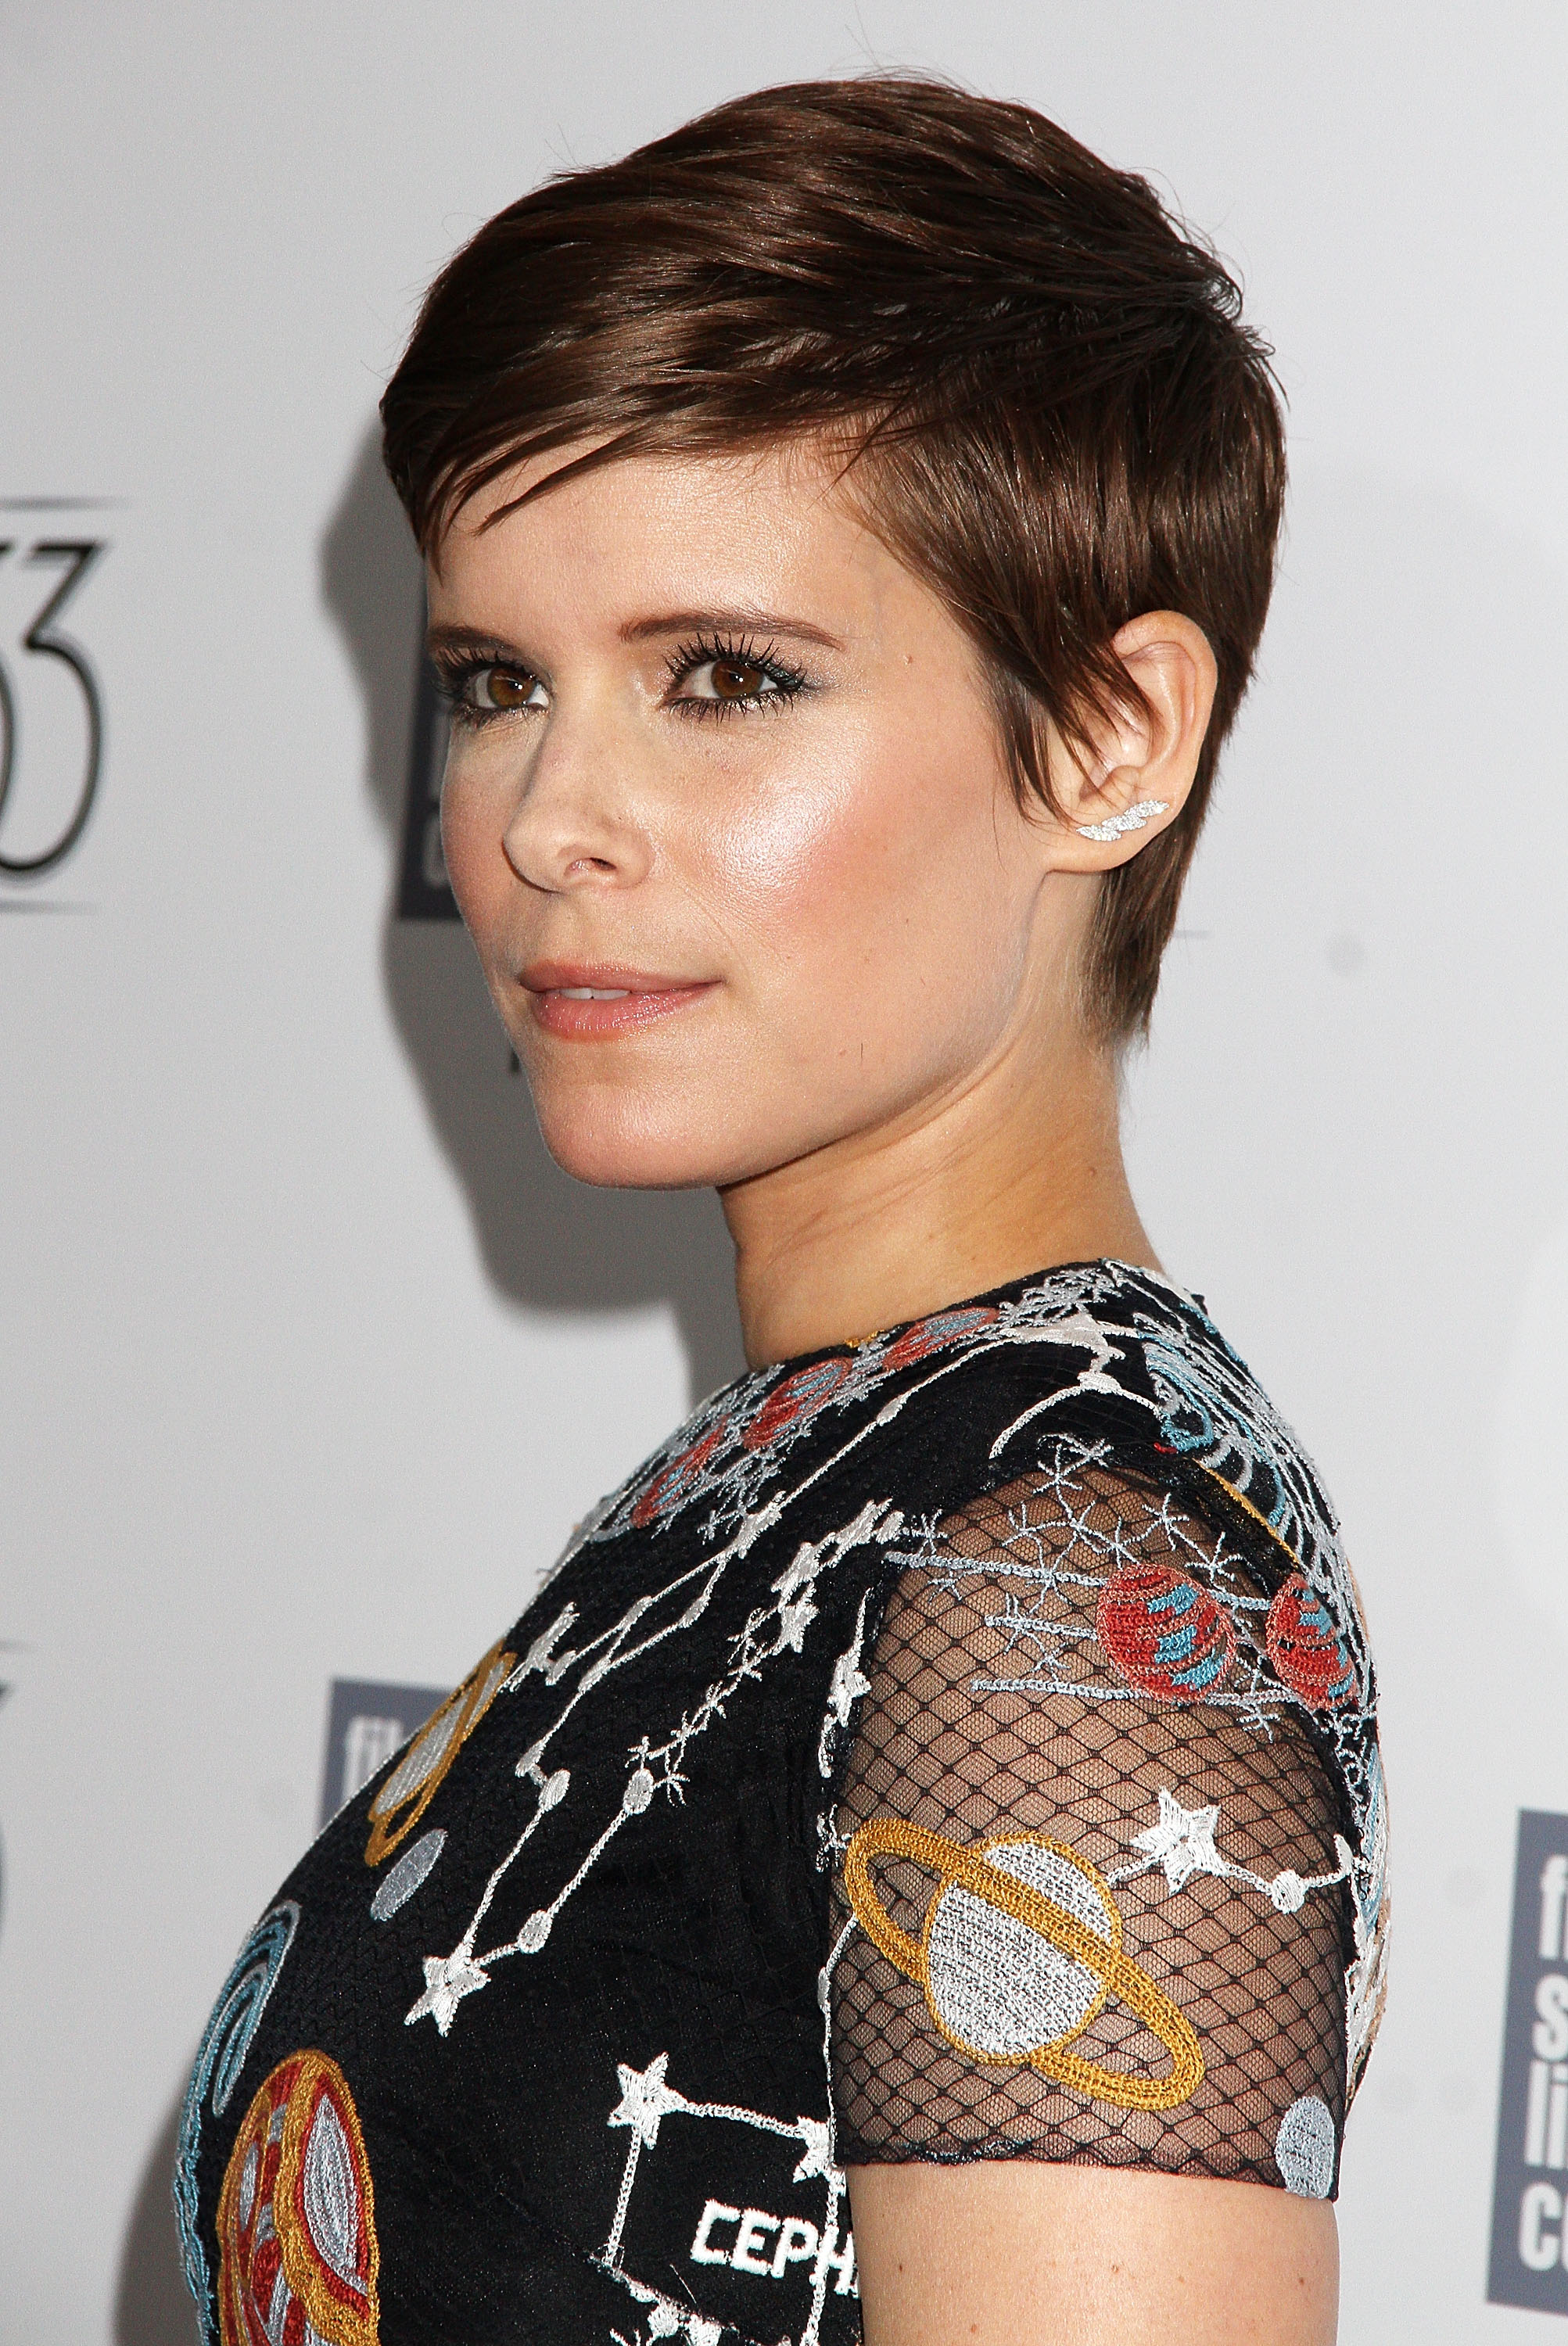 """NEW YORK, NY - SEPTEMBER 27:  Kate Mara attends the 53rd New York Film Festival - """"The Martian"""" Premiere at Alice Tully Hall on September 27, 2015 in New York City.  (Photo by Laura Cavanaugh/FilmMagic)"""